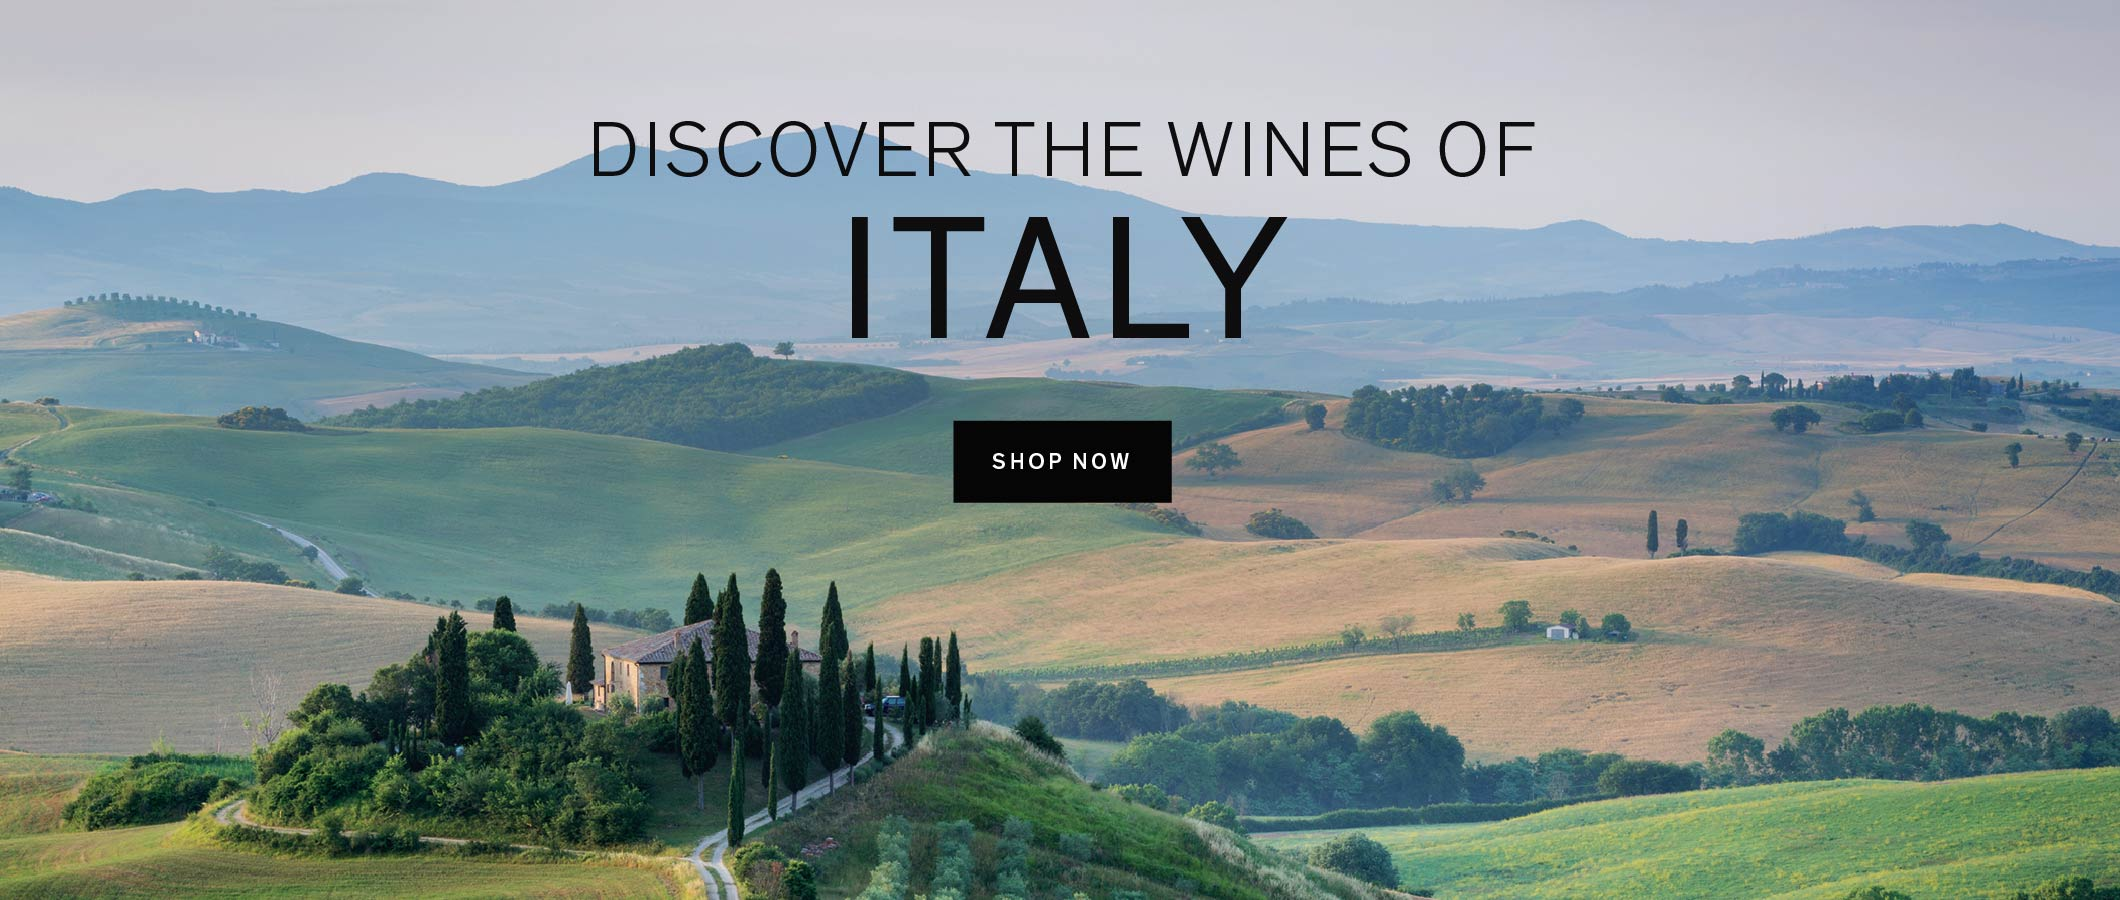 Discover the wines of Italy